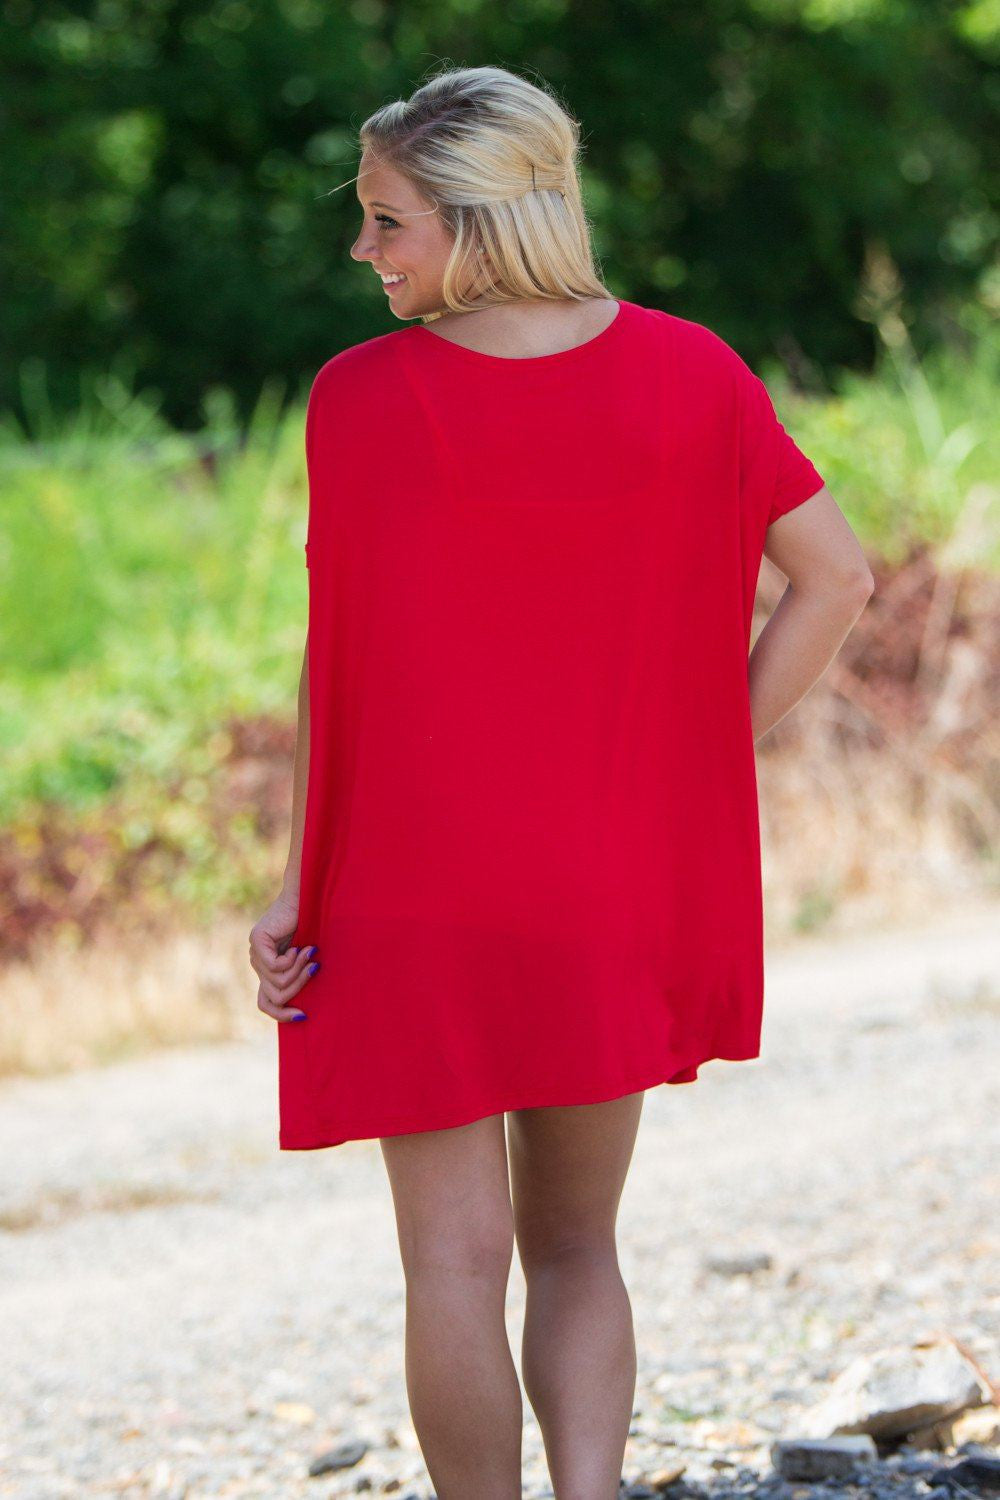 Short Sleeve Piko Tunic - Red - Piko Clothing - 2